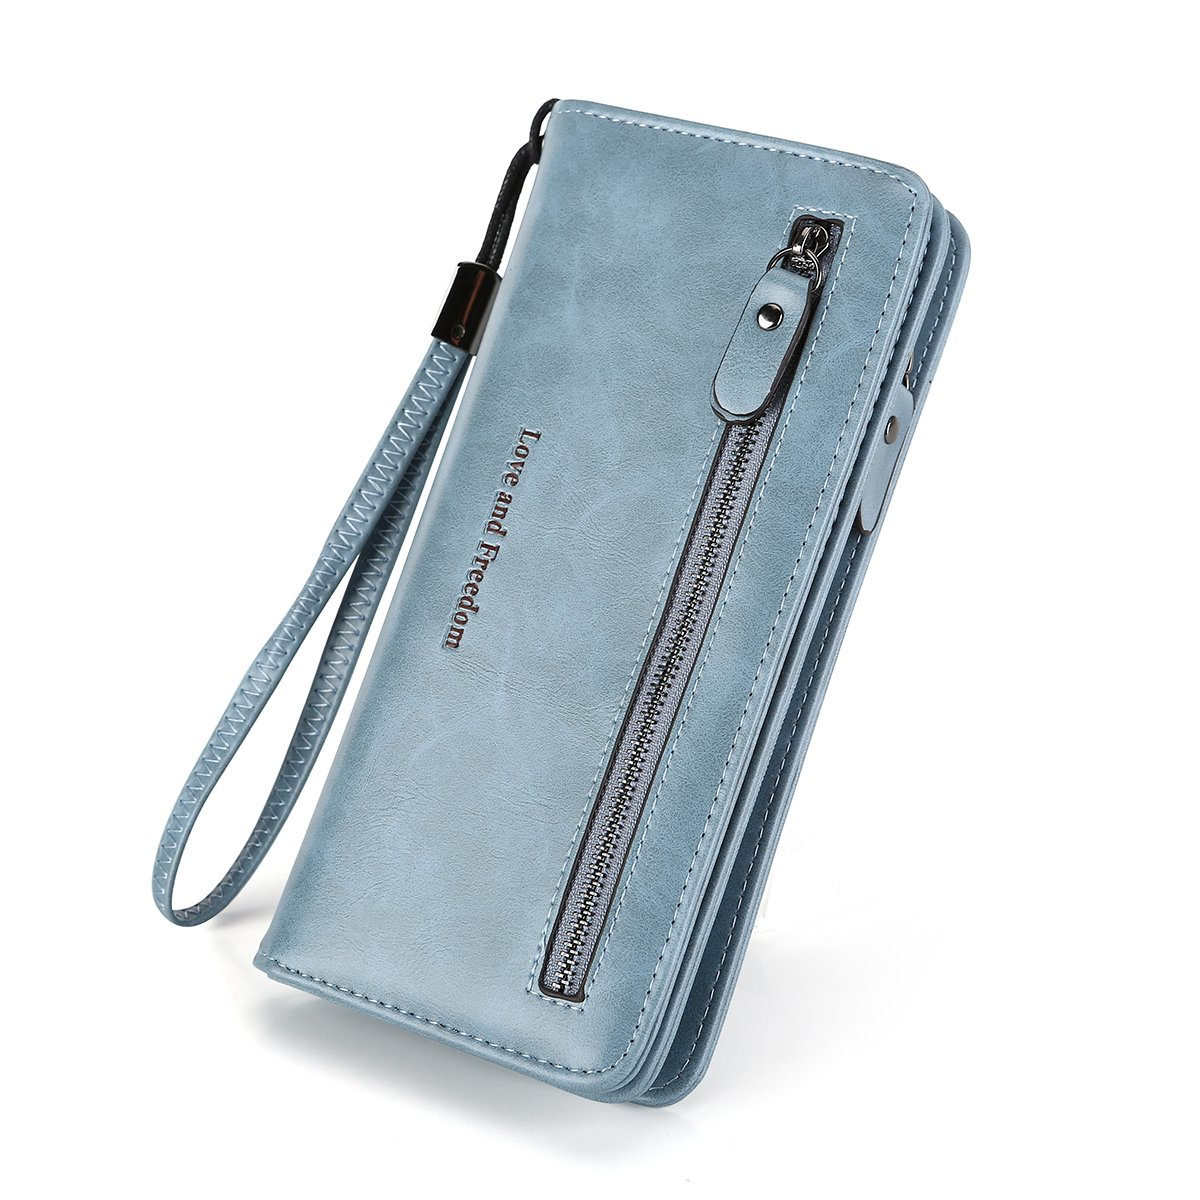 Women RFID Blocking Wallet Leather Zipper Around Clutch Large Capacity Travel Purse Wristlet-Laimi duo (light blue)